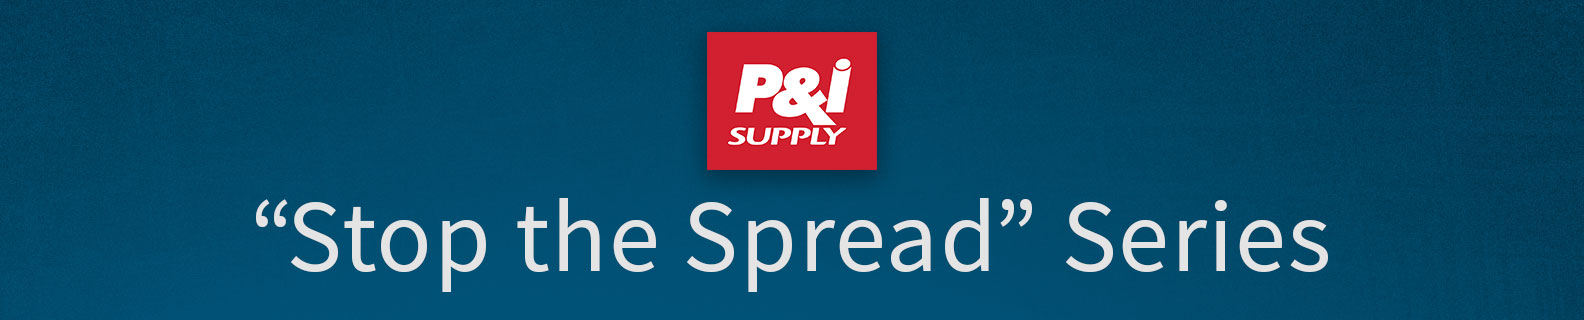 "P&I Supply - ""Stop the Spread"" Series"